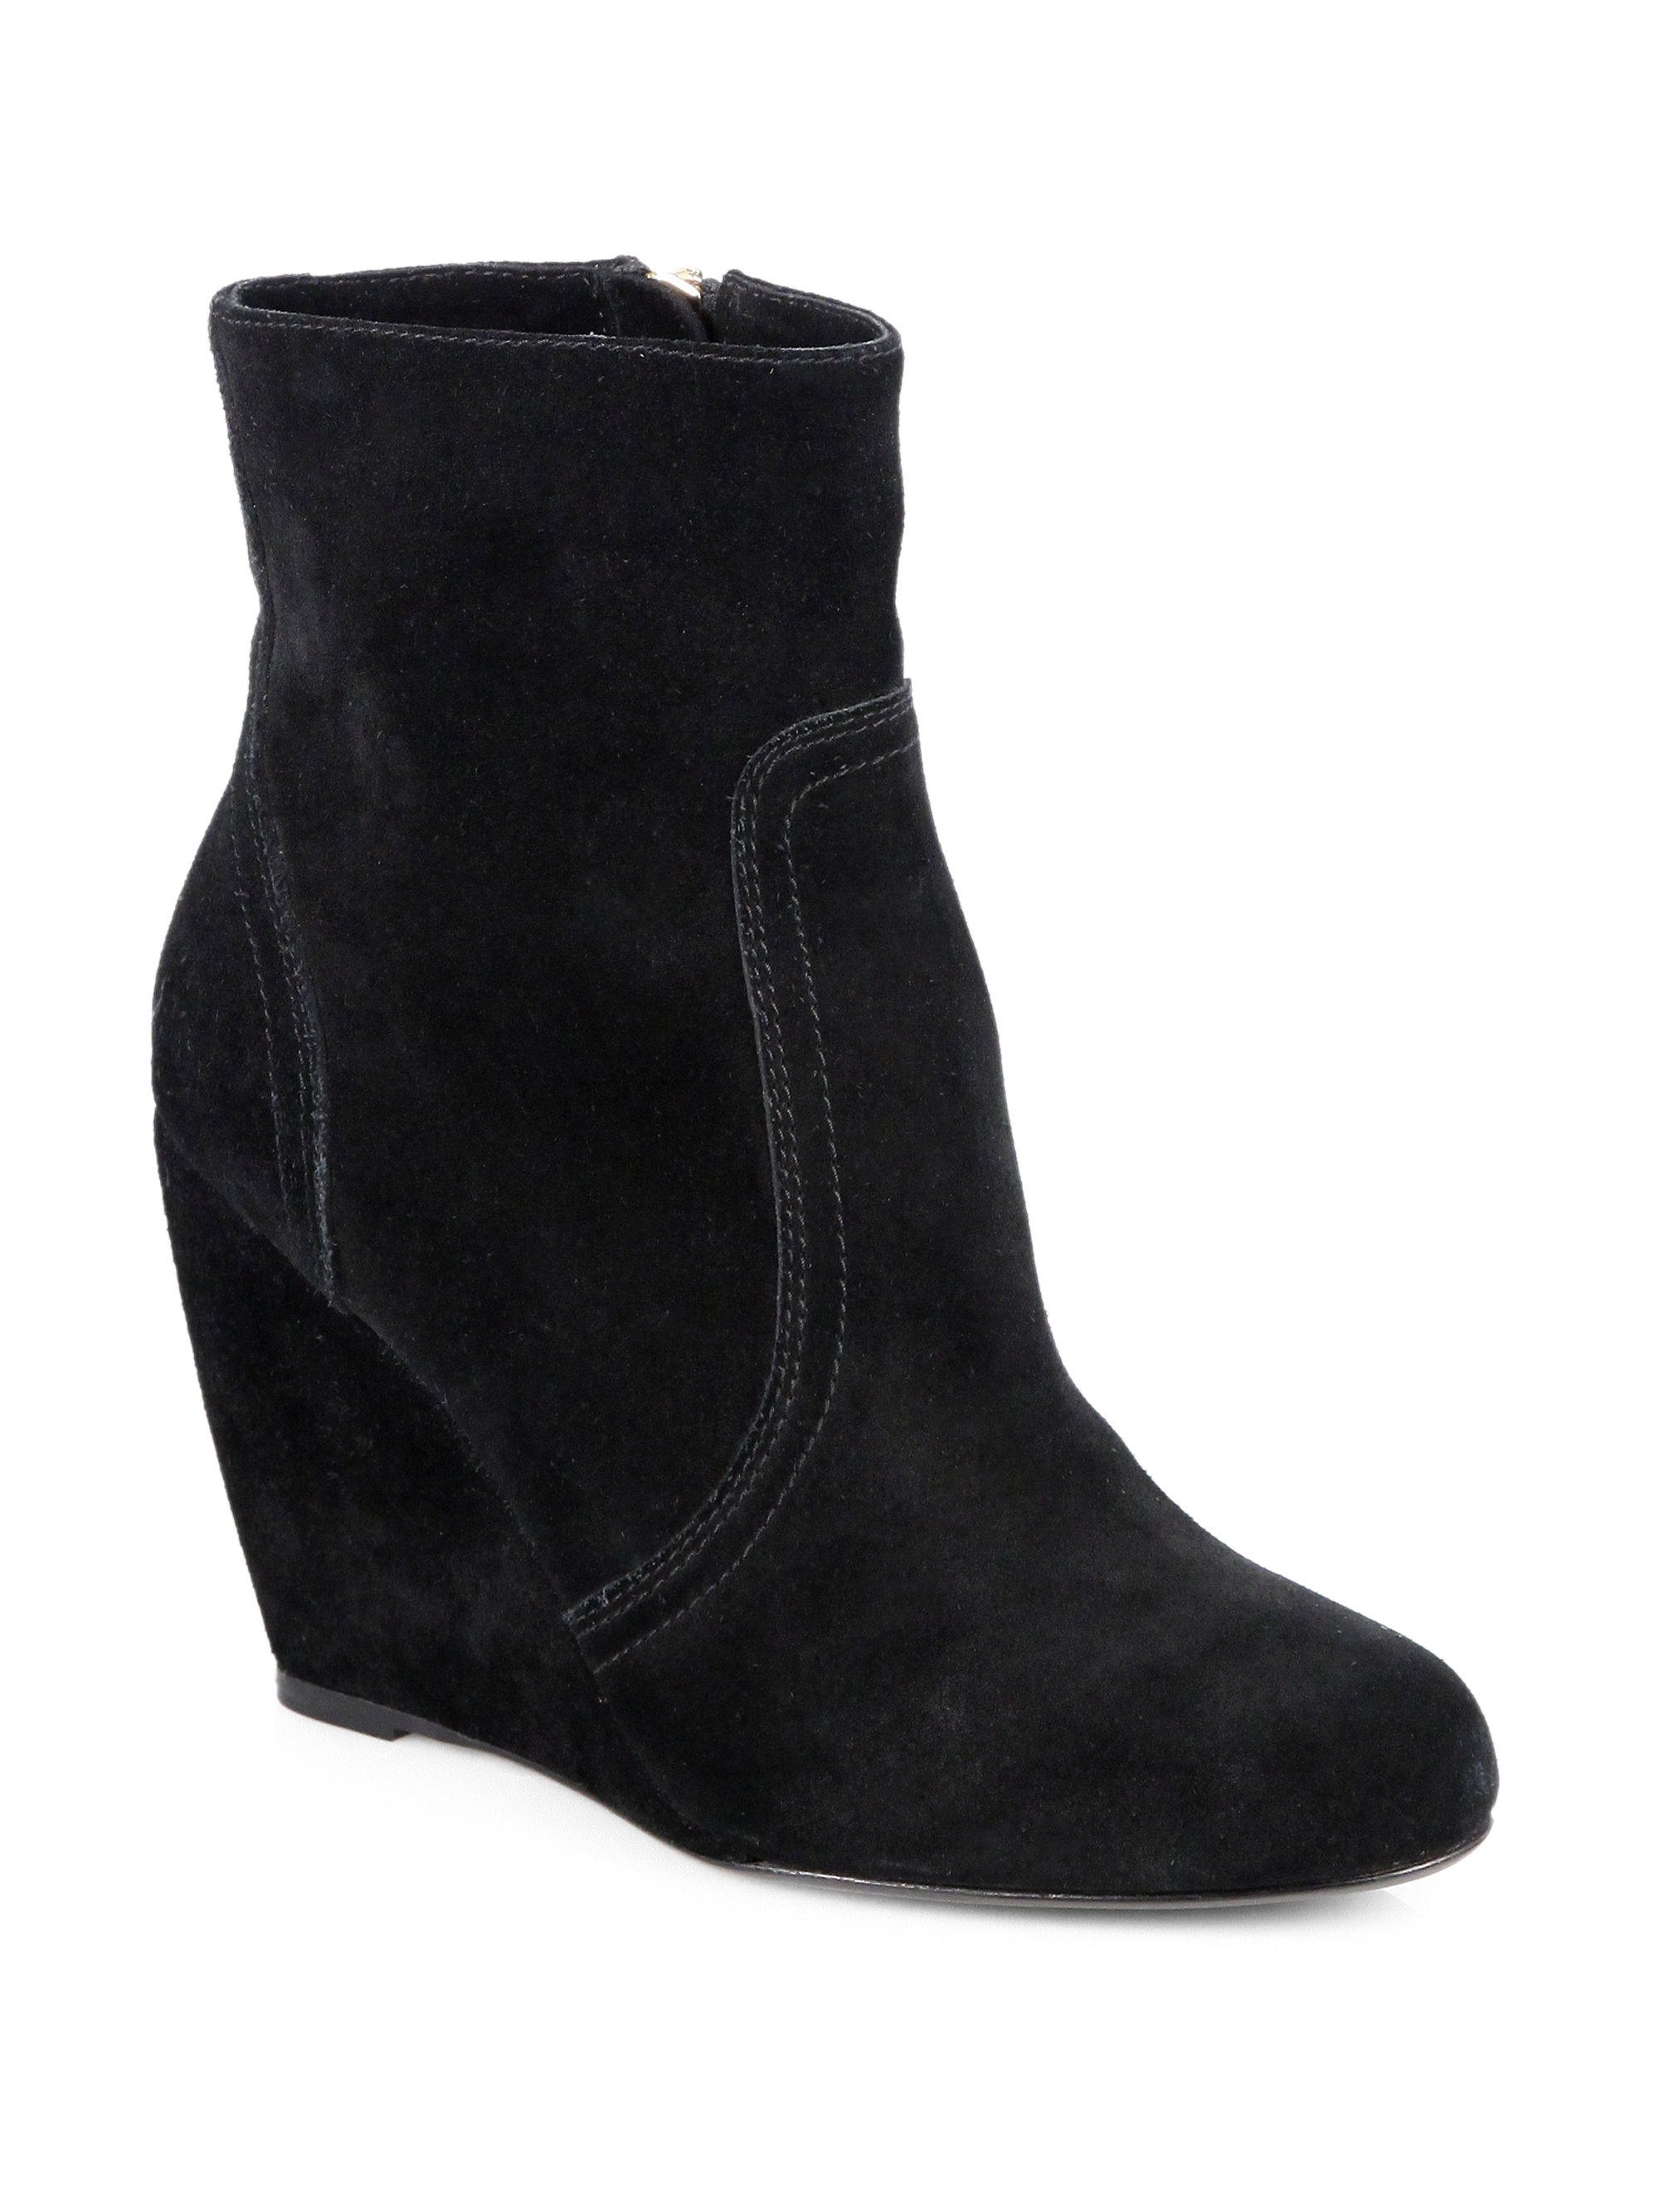 joie oakley suede wedge ankle boots in black lyst